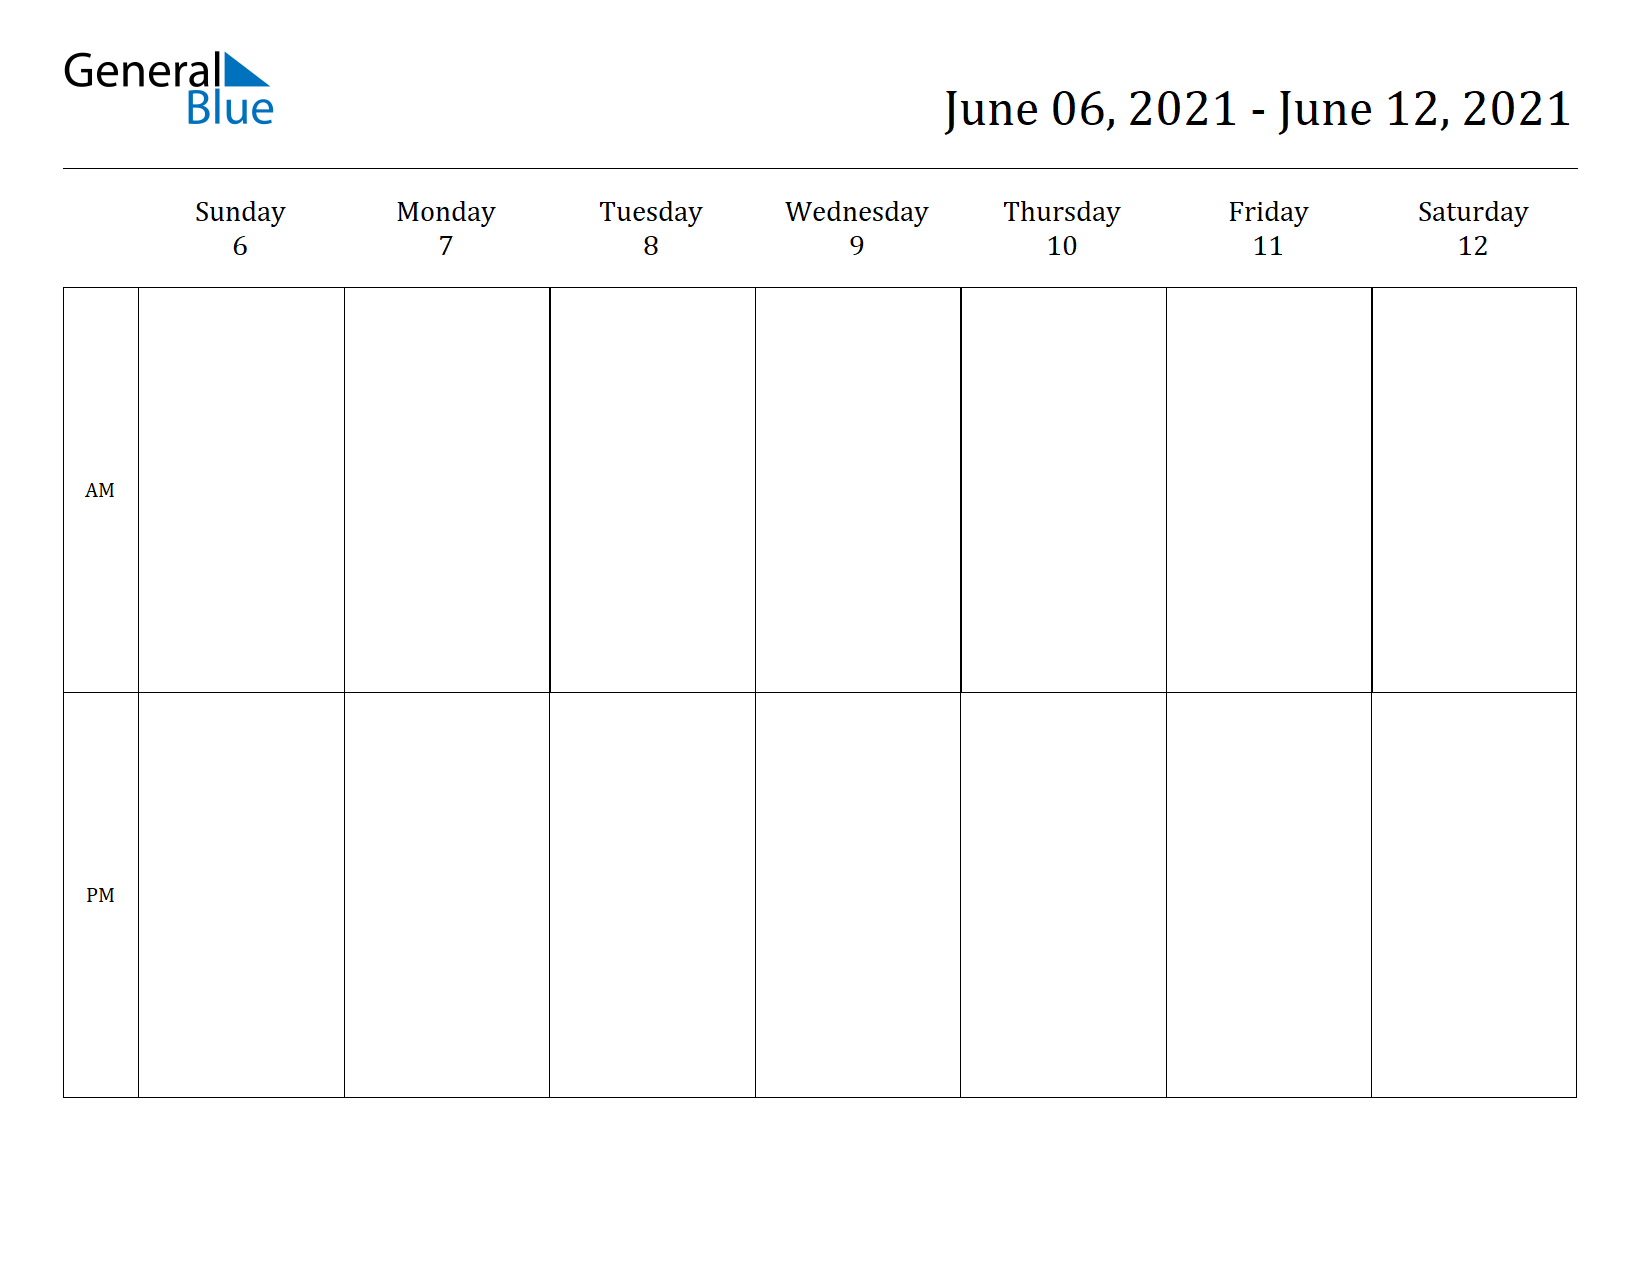 Weekly Calendar for Jun 06, 2021 to Jun 12, 2021